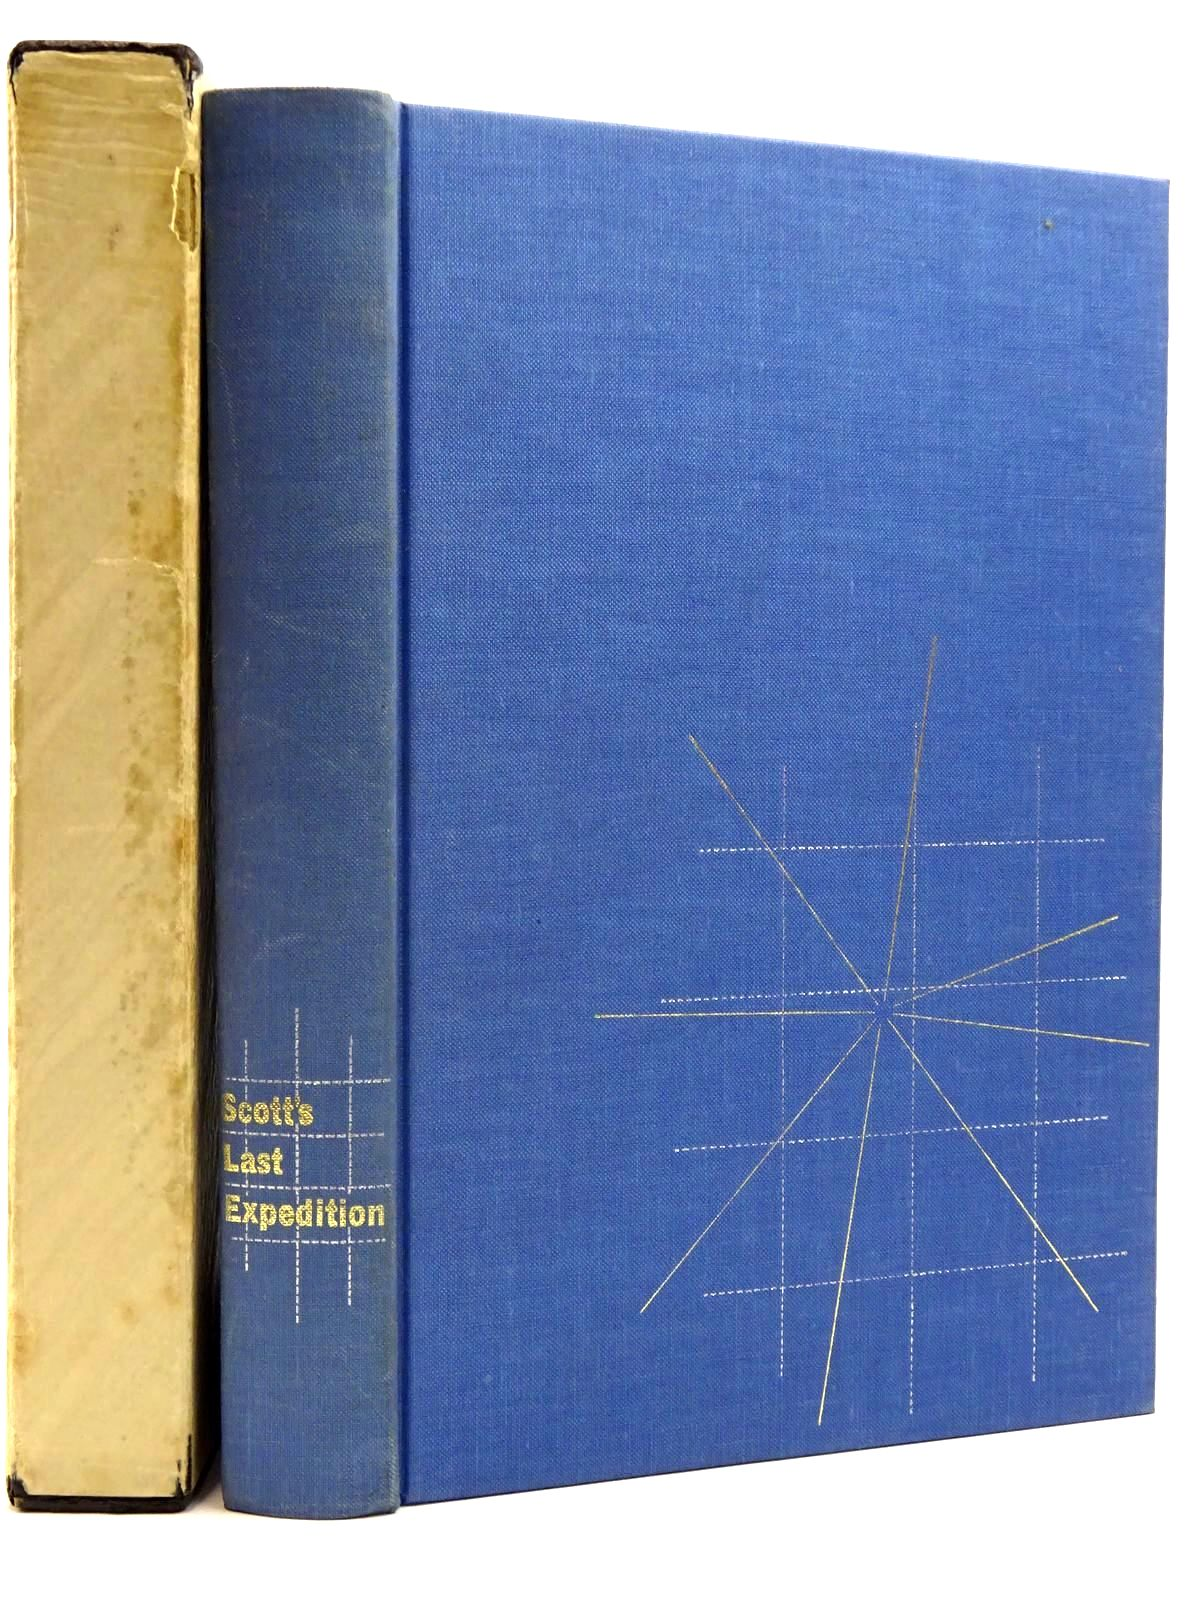 Photo of SCOTT'S LAST EXPEDITION written by Scott, Robert Falcon published by Folio Society (STOCK CODE: 2131247)  for sale by Stella & Rose's Books